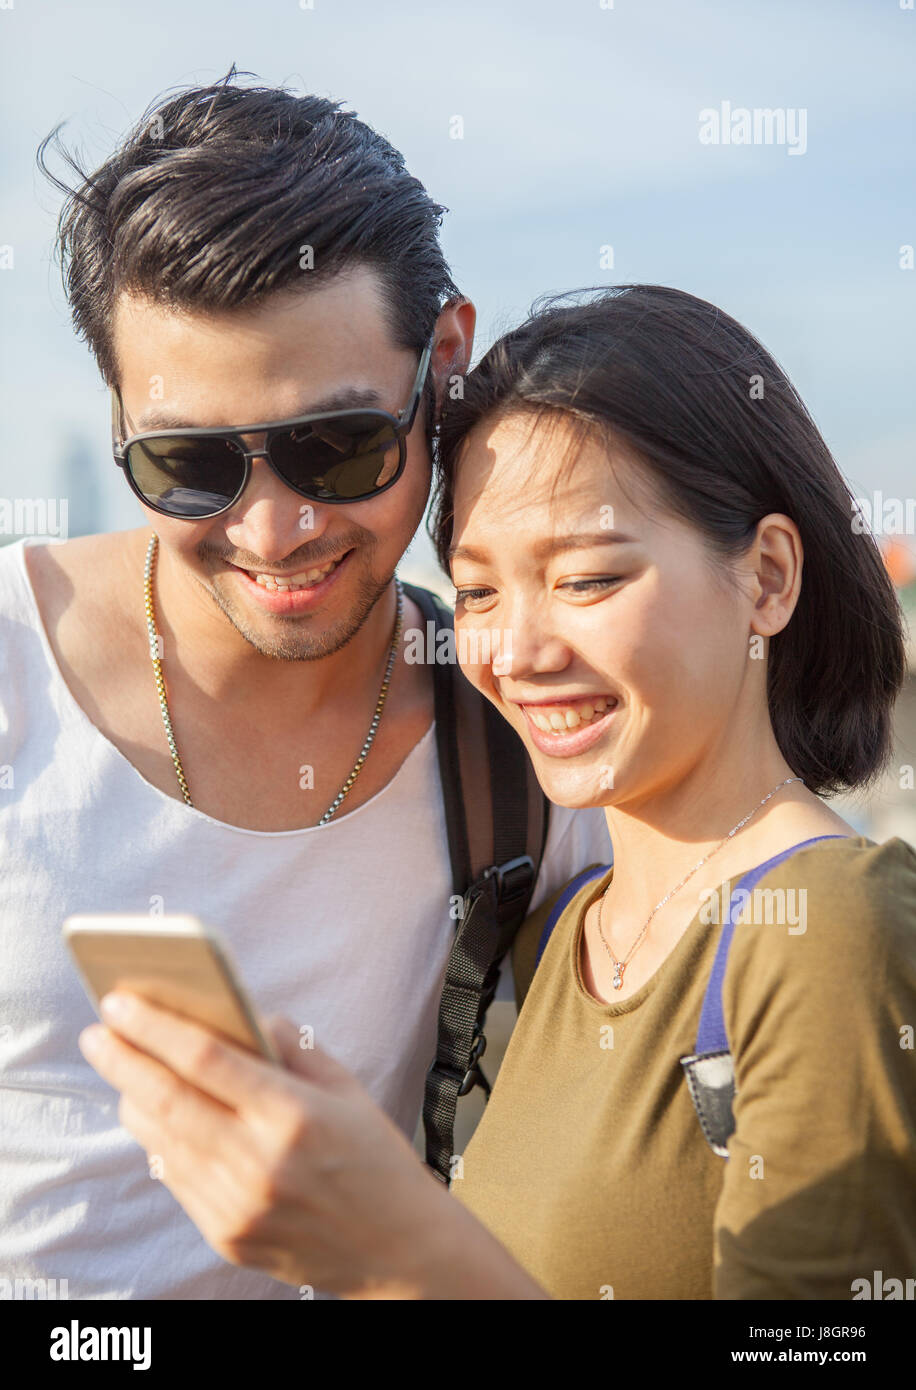 close up face of younger asian man and woman looking to smart phone use for young people digital technology lifestyle - Stock Image